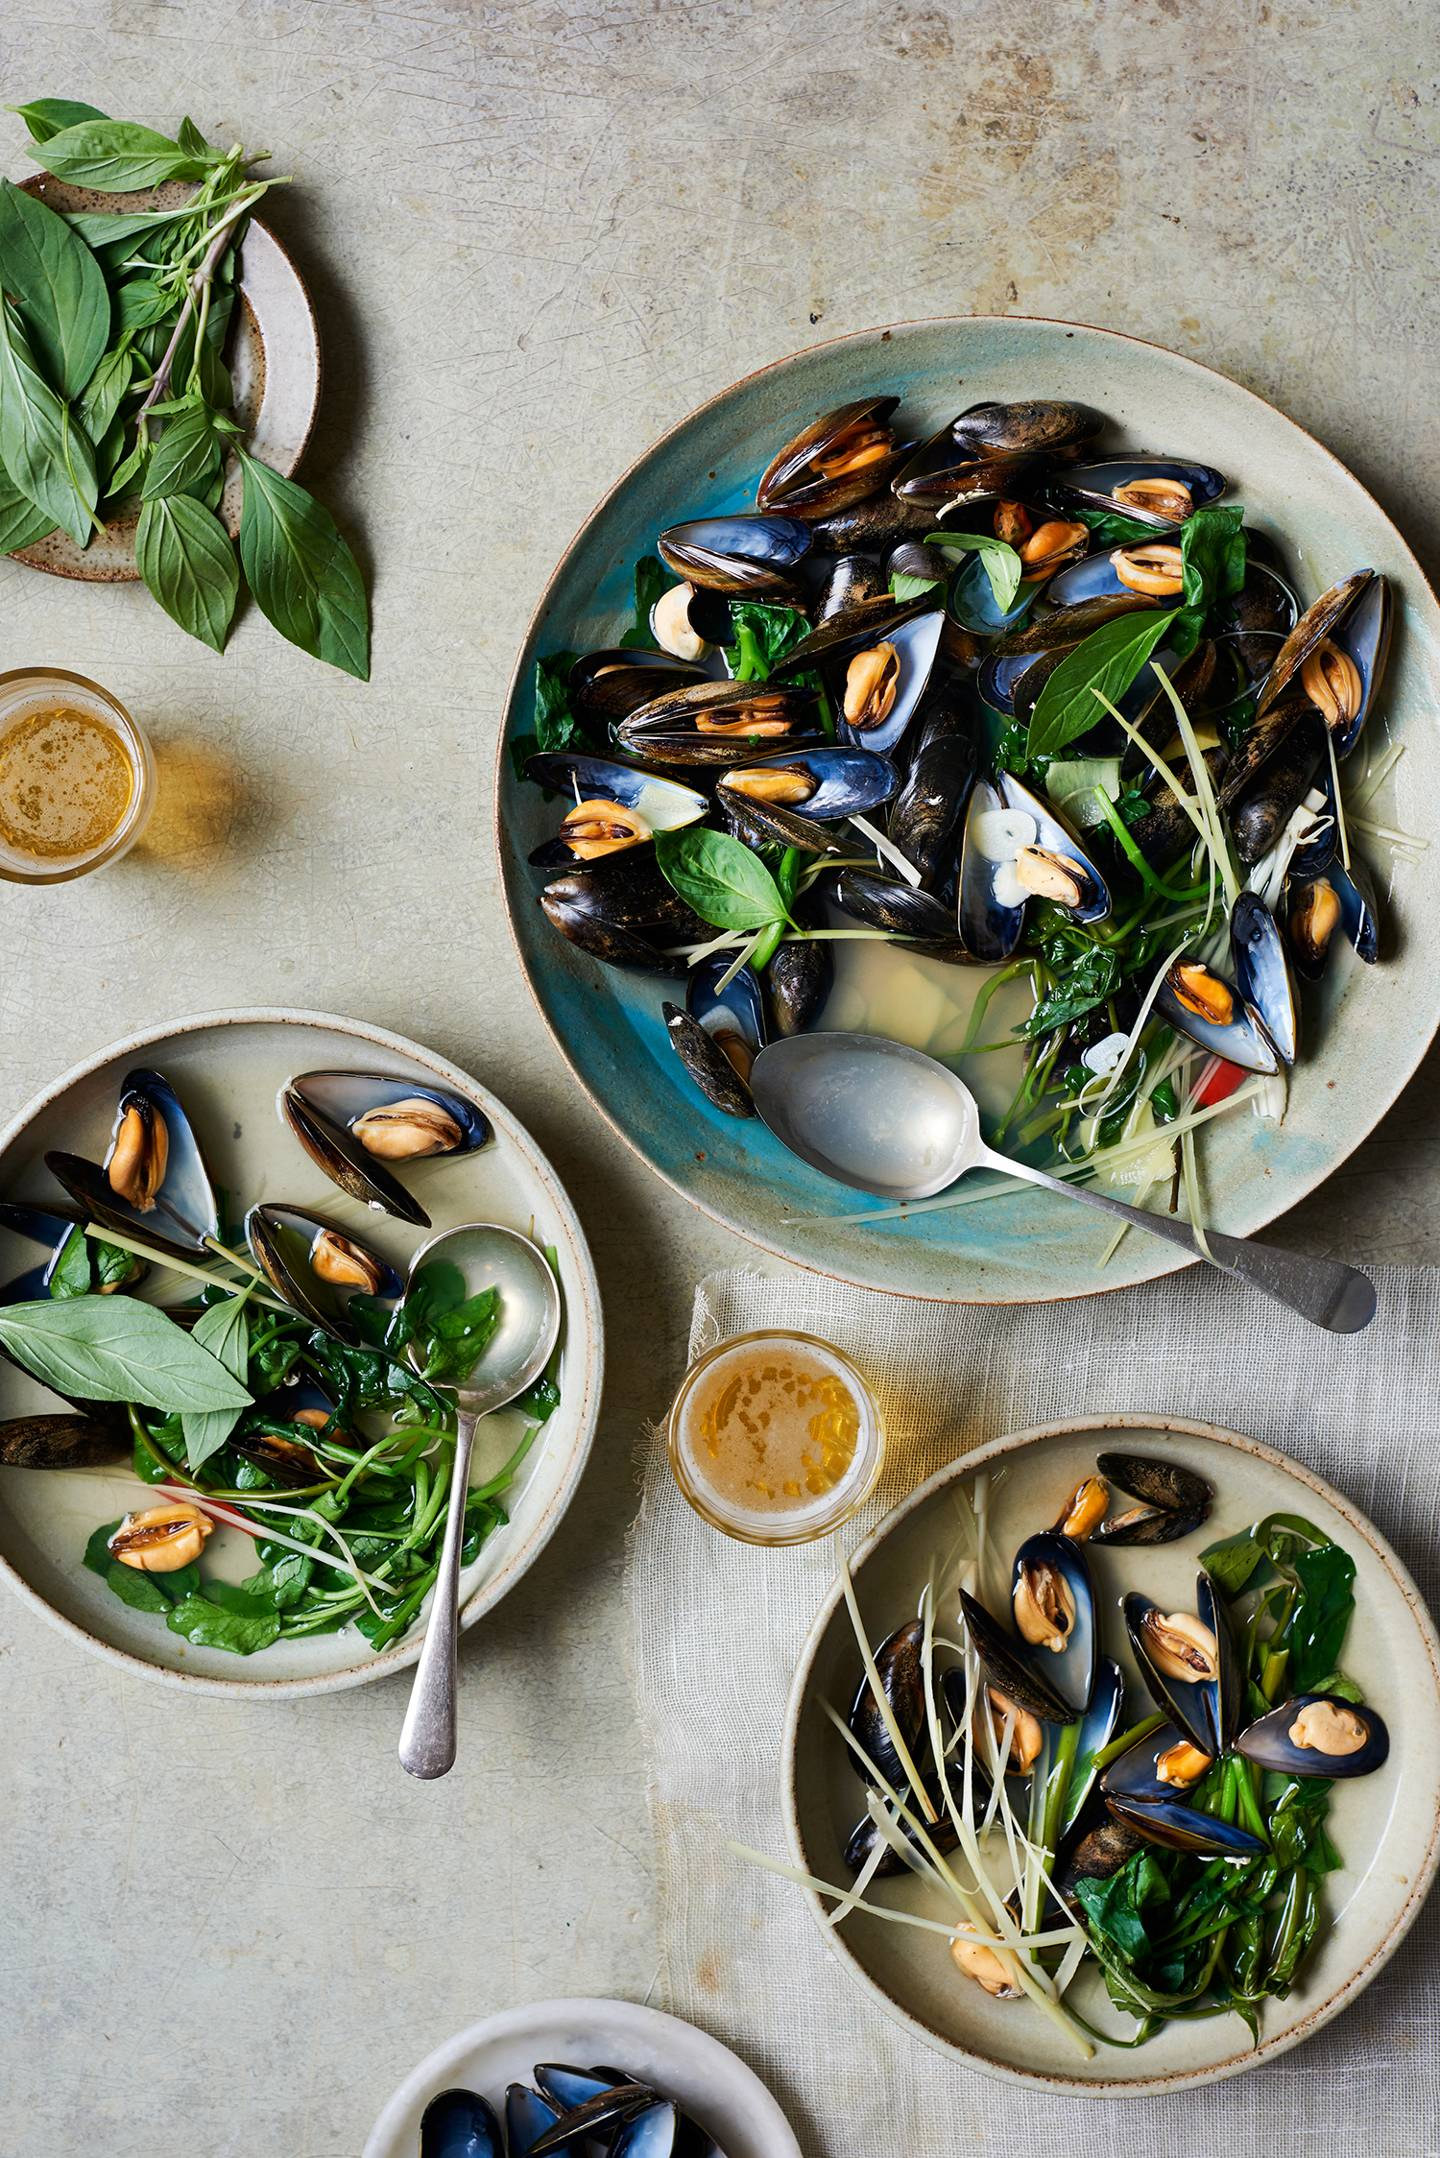 Mussels with lemongrass and ginger